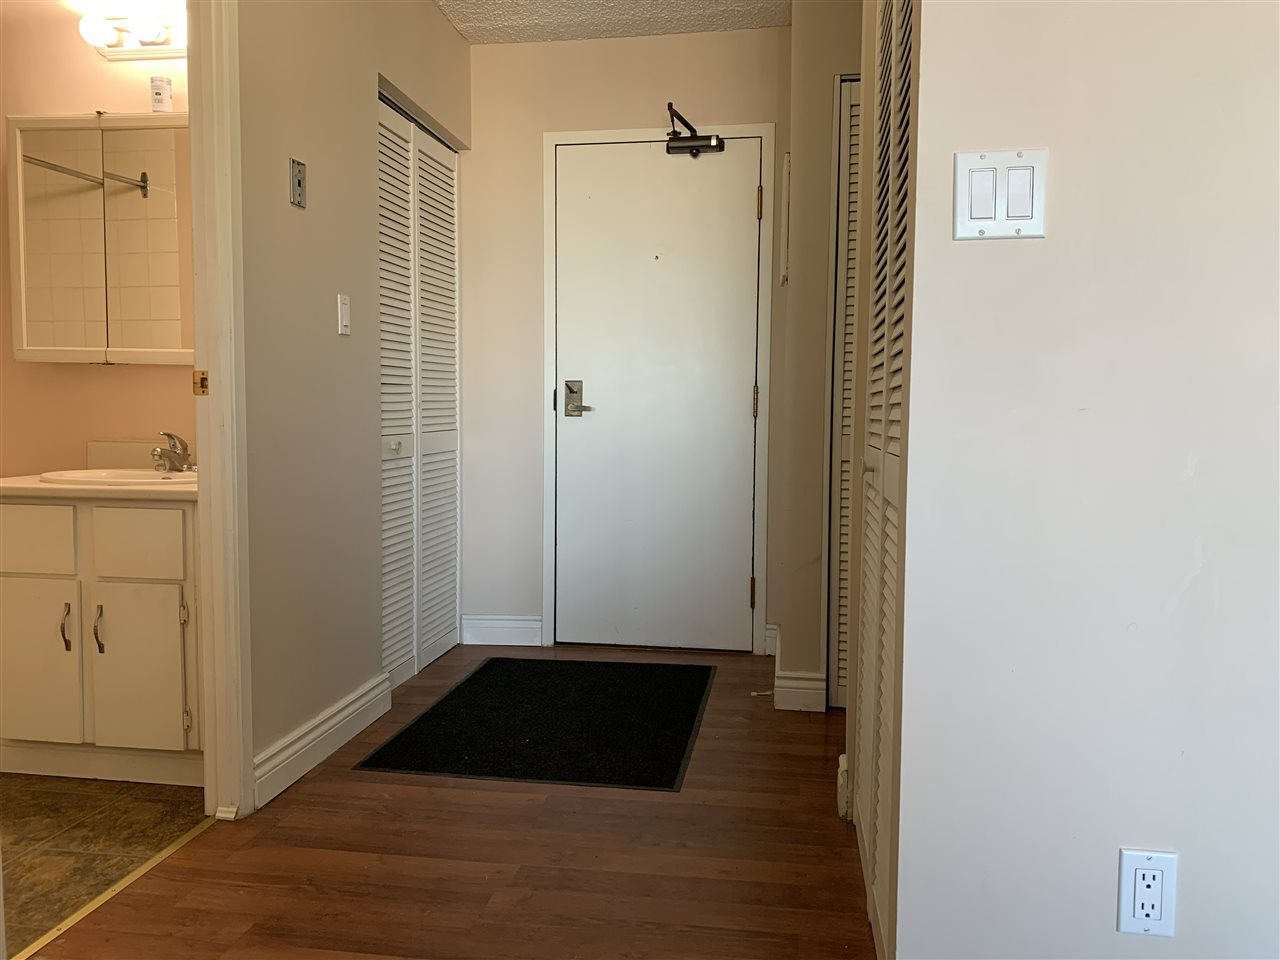 Investment alert! This 500 sq.ft One bedroom + one bathroom unit includes heat and water. Stove, Fridge, and Dishwasher. This unit has a private, fenced patio off of back of unit. $60/month for outdoor stall and $100/month for underground parking.